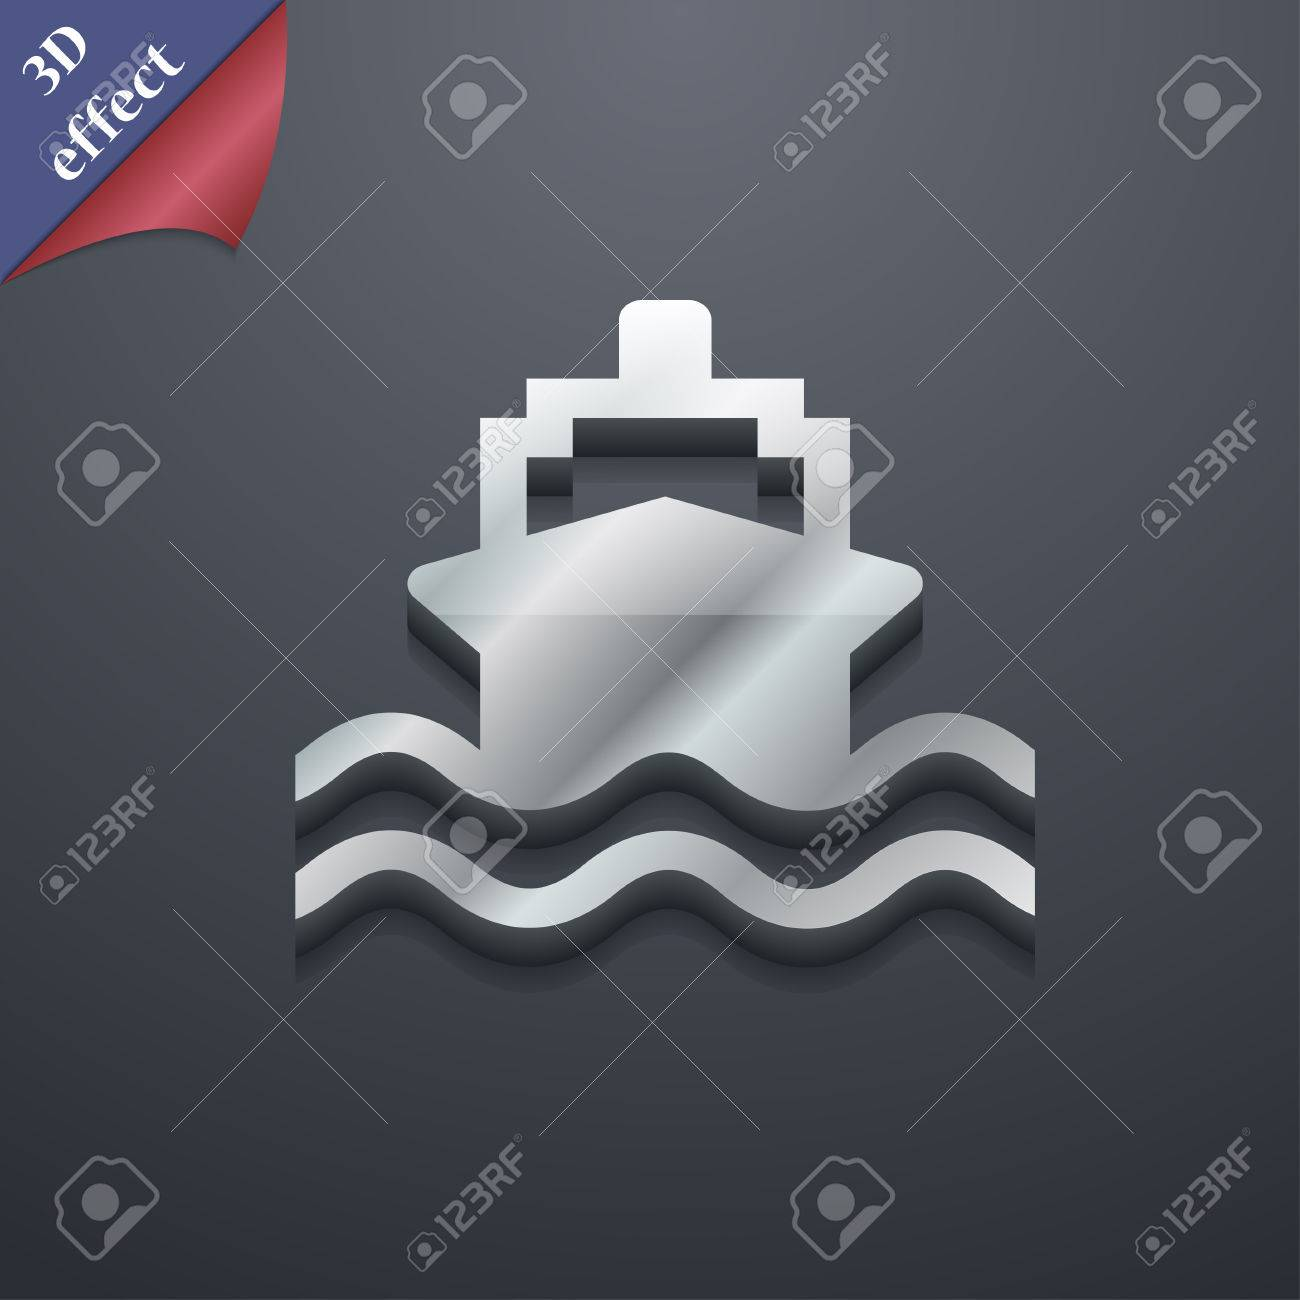 Ship icon symbol 3d style trendy modern design with space ship icon symbol 3d style trendy modern design with space for your text buycottarizona